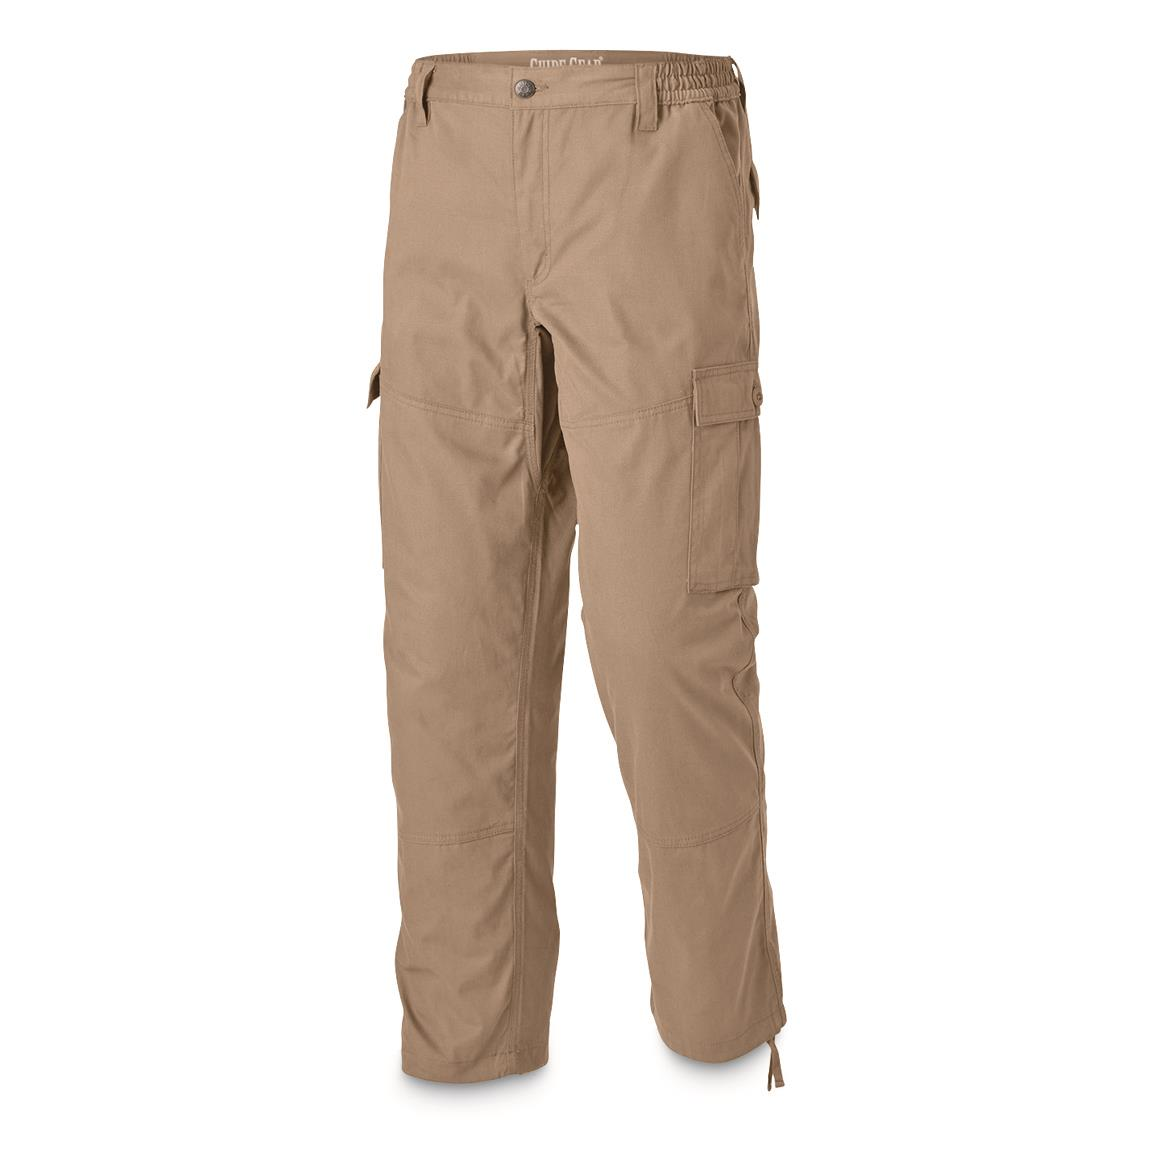 Guide Gear Men's 6-Pocket Duck Cargo Pants, Tan